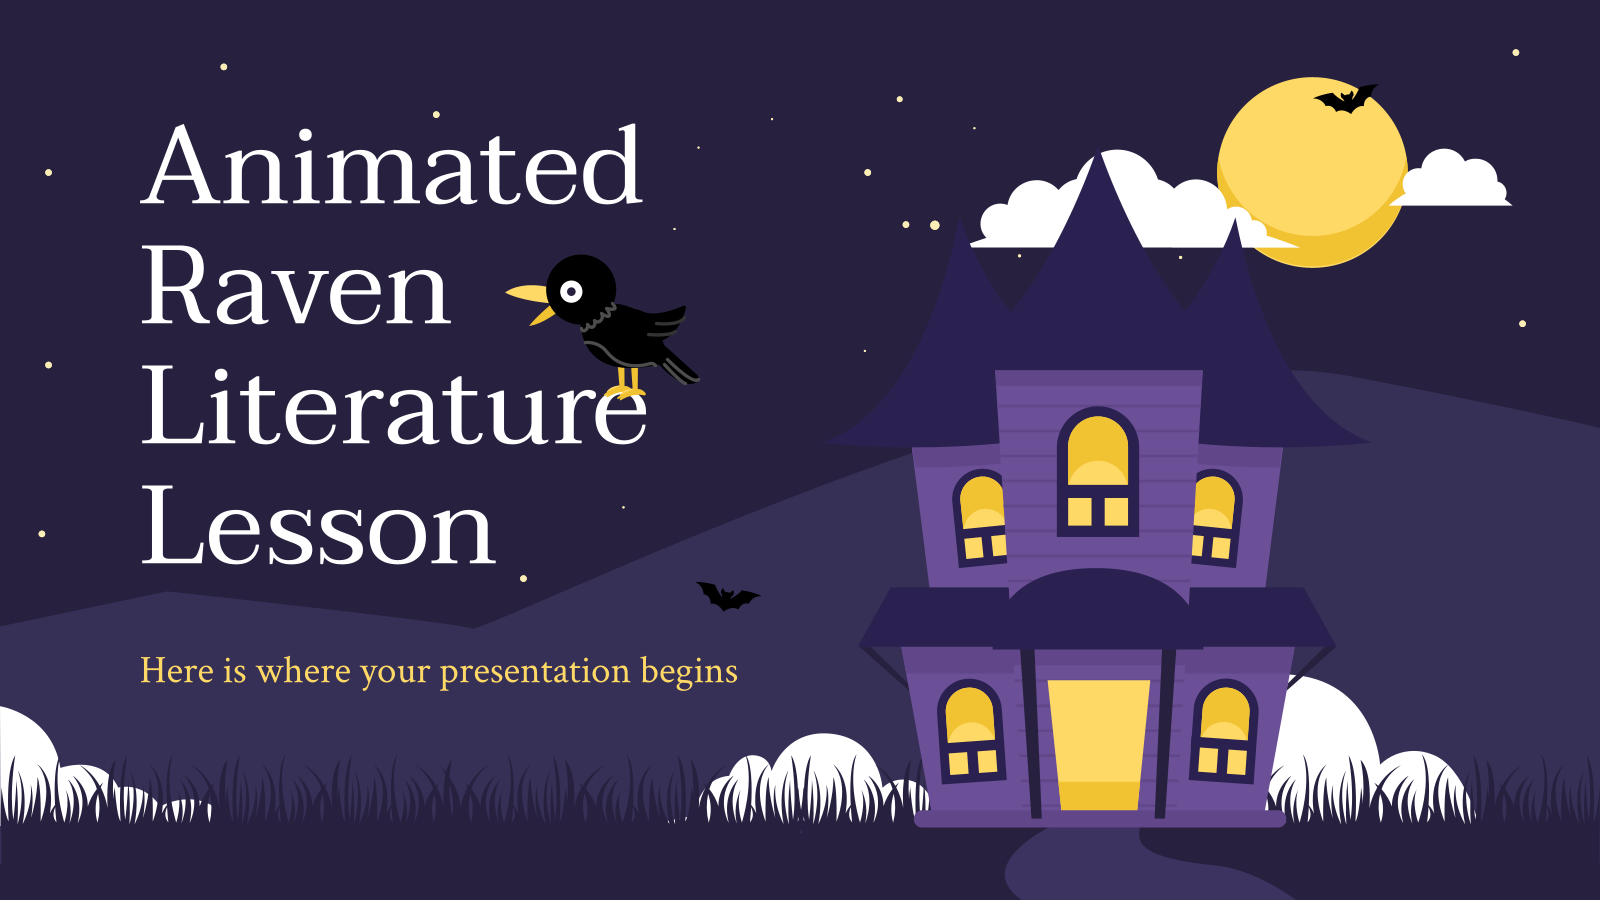 Animated Raven Literature Lesson presentation template